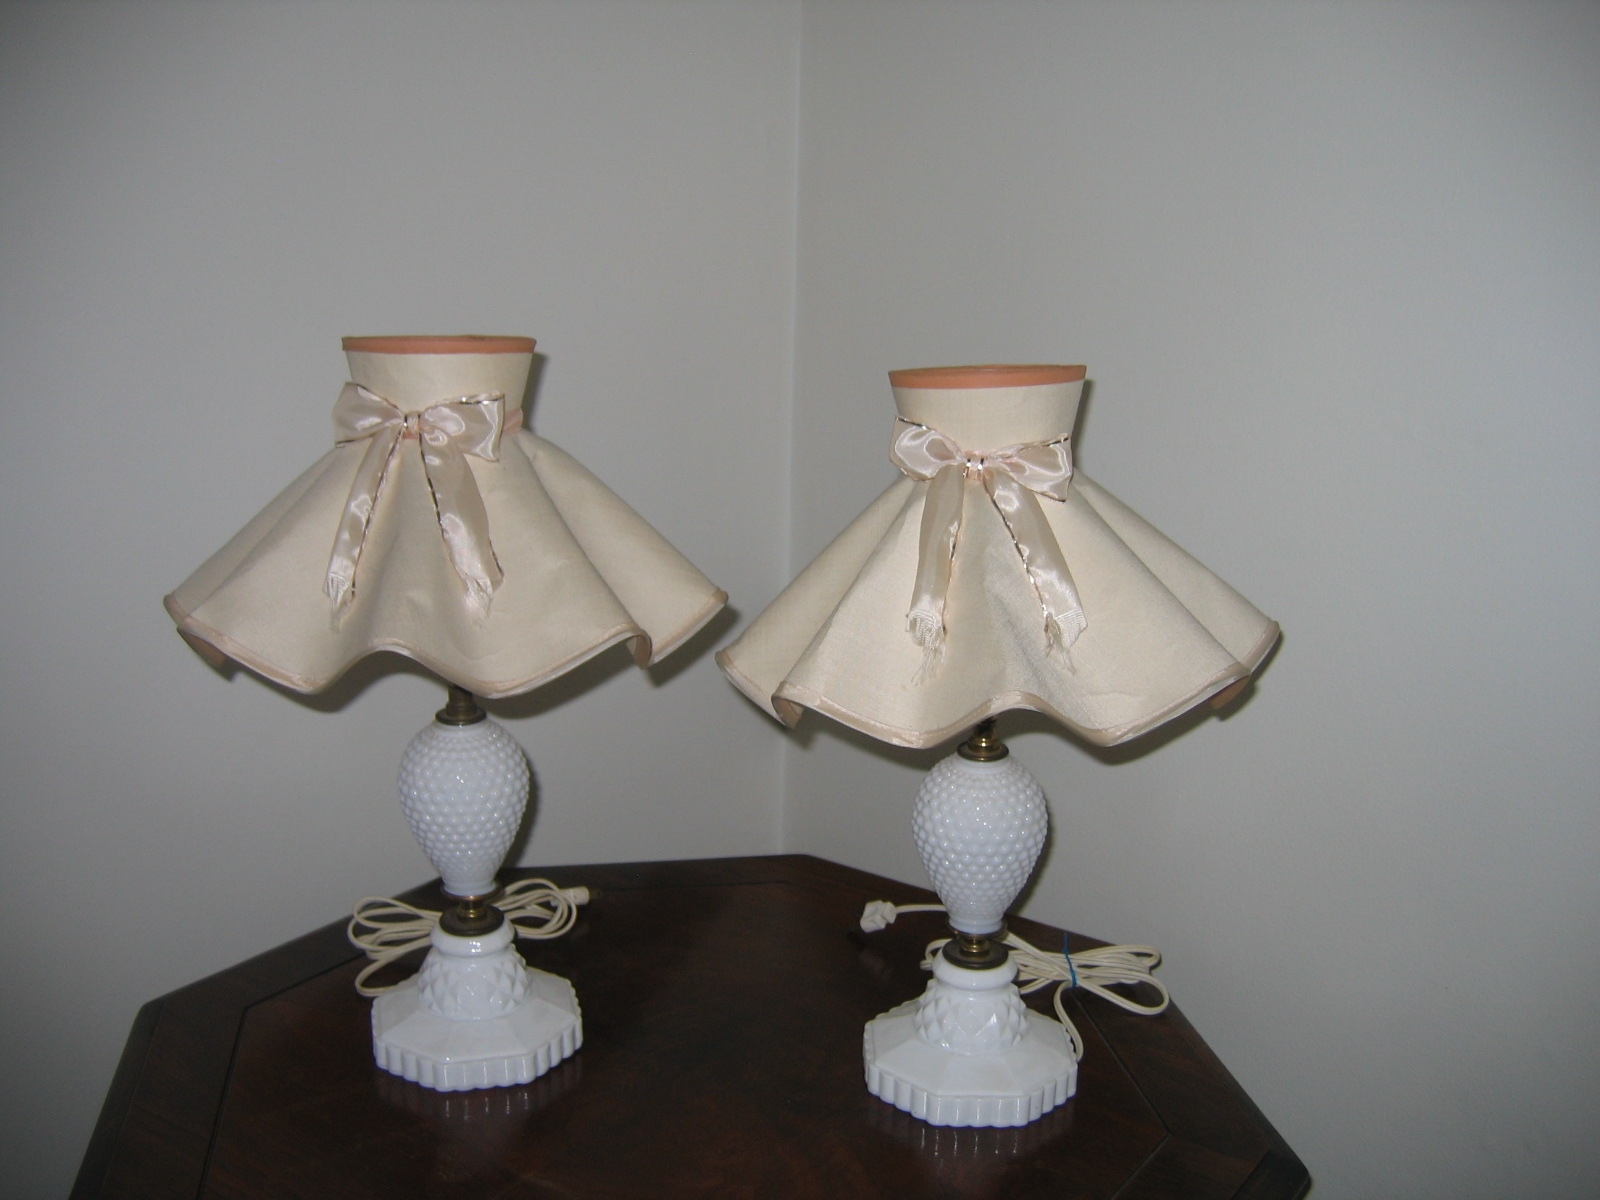 Vintage Matching Milk Glass Bedroom Lamps Item #772 For Sale